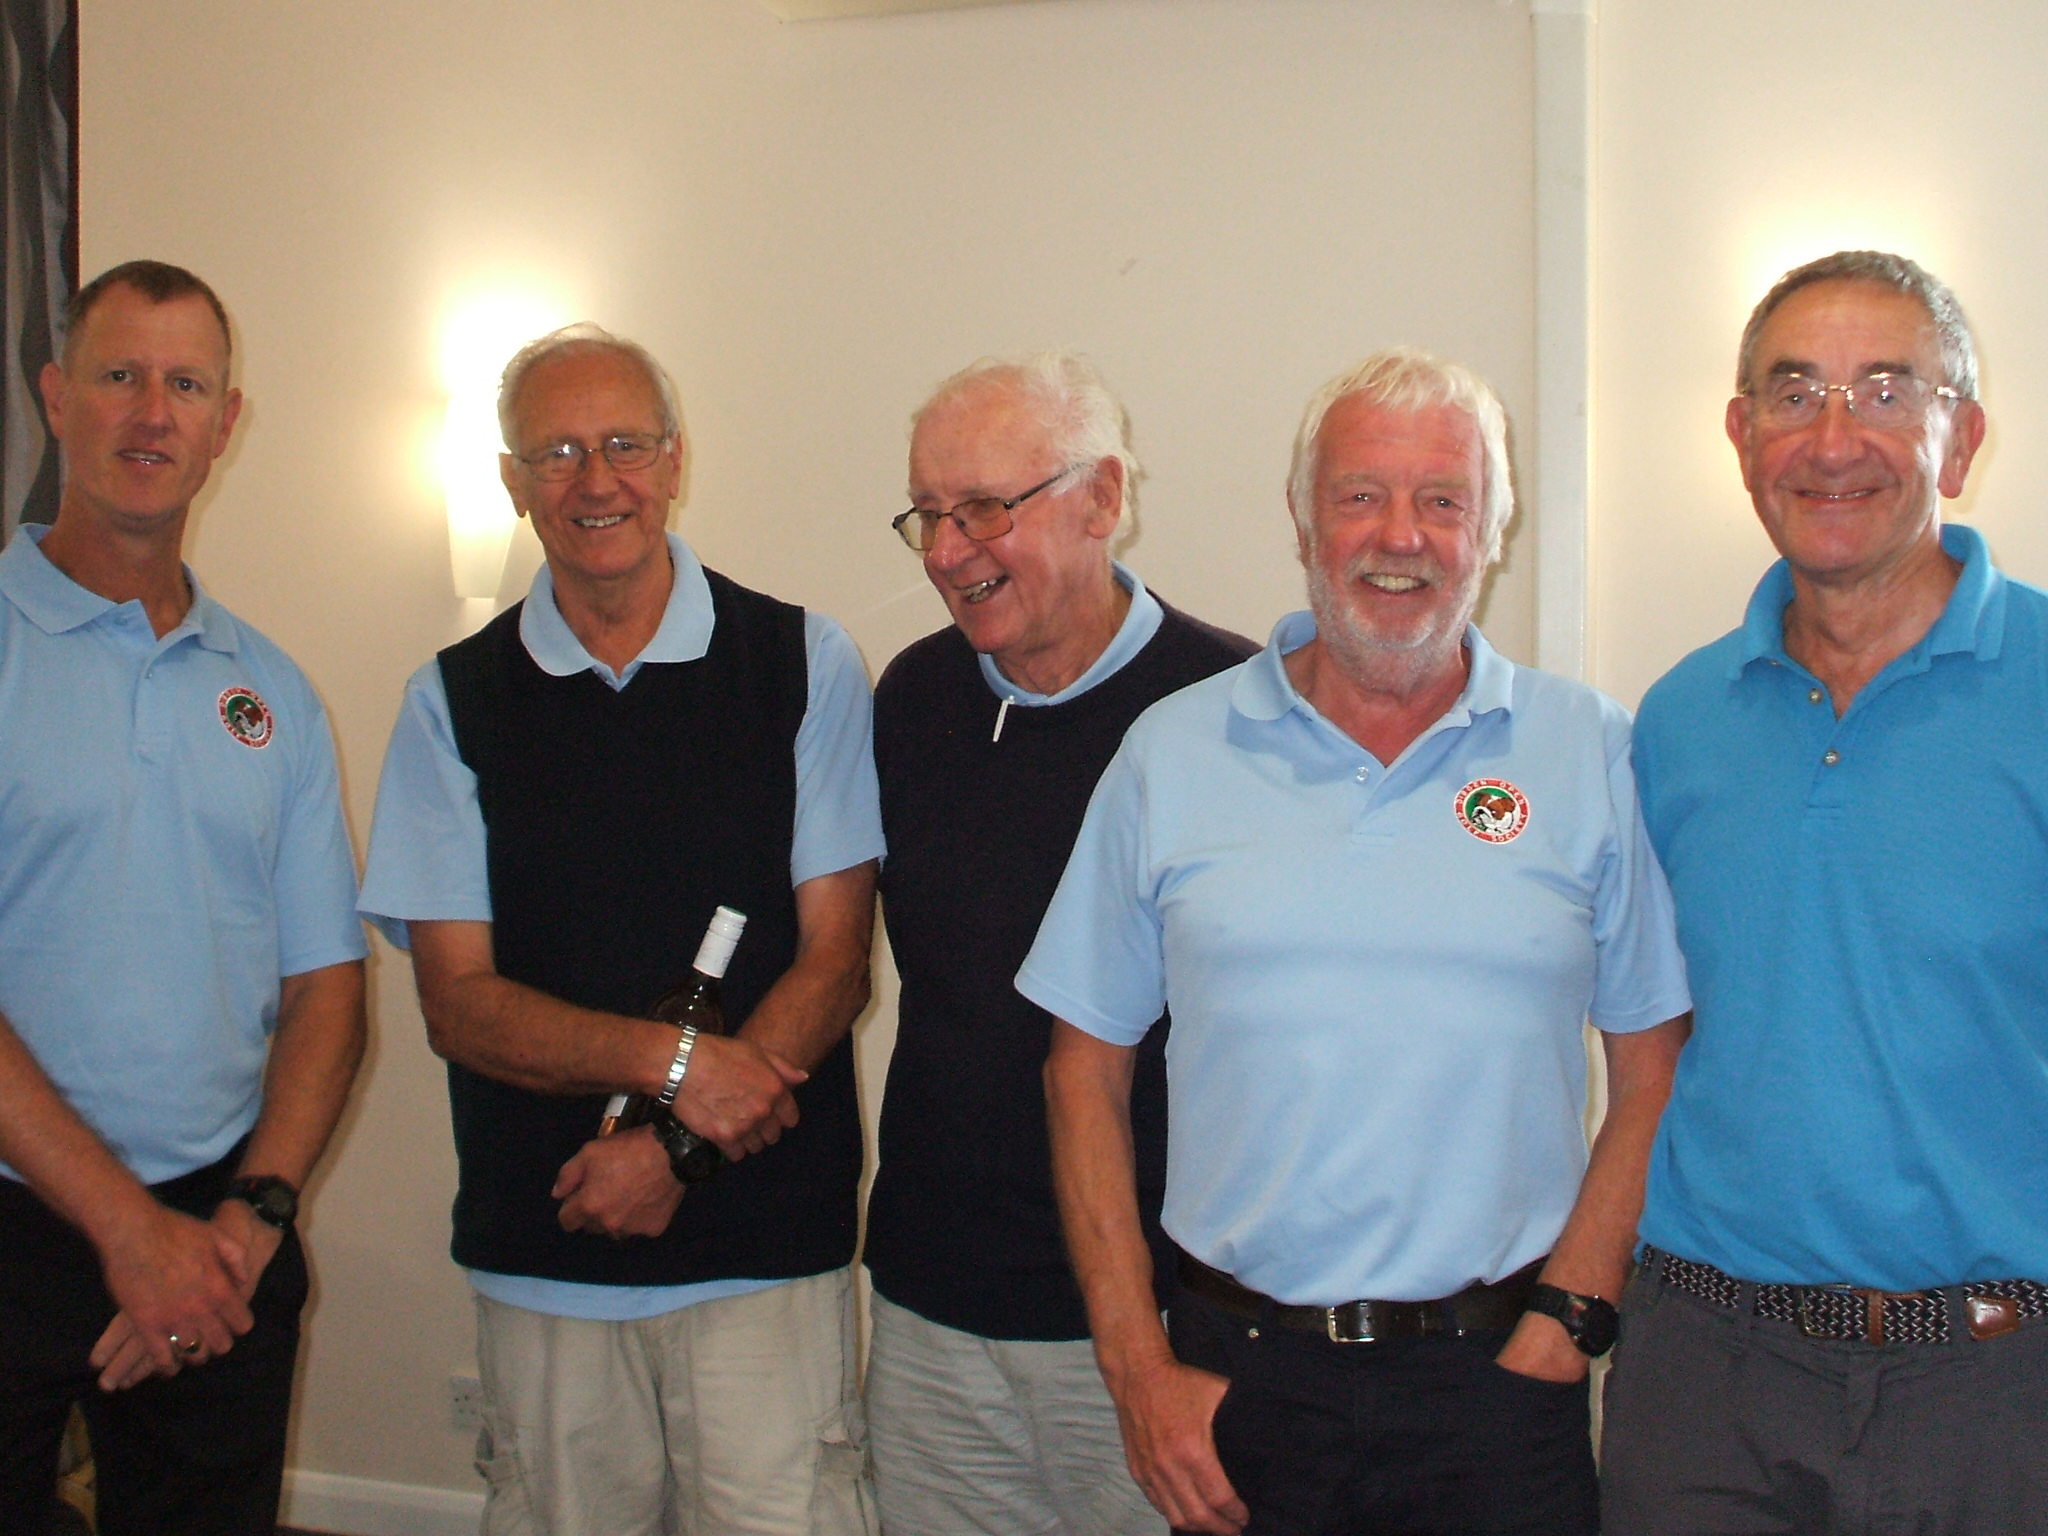 18 June: Winners l to r Nigel Union; Ron Gooding; Brian Dash; Peter Dunn; Les Maycey